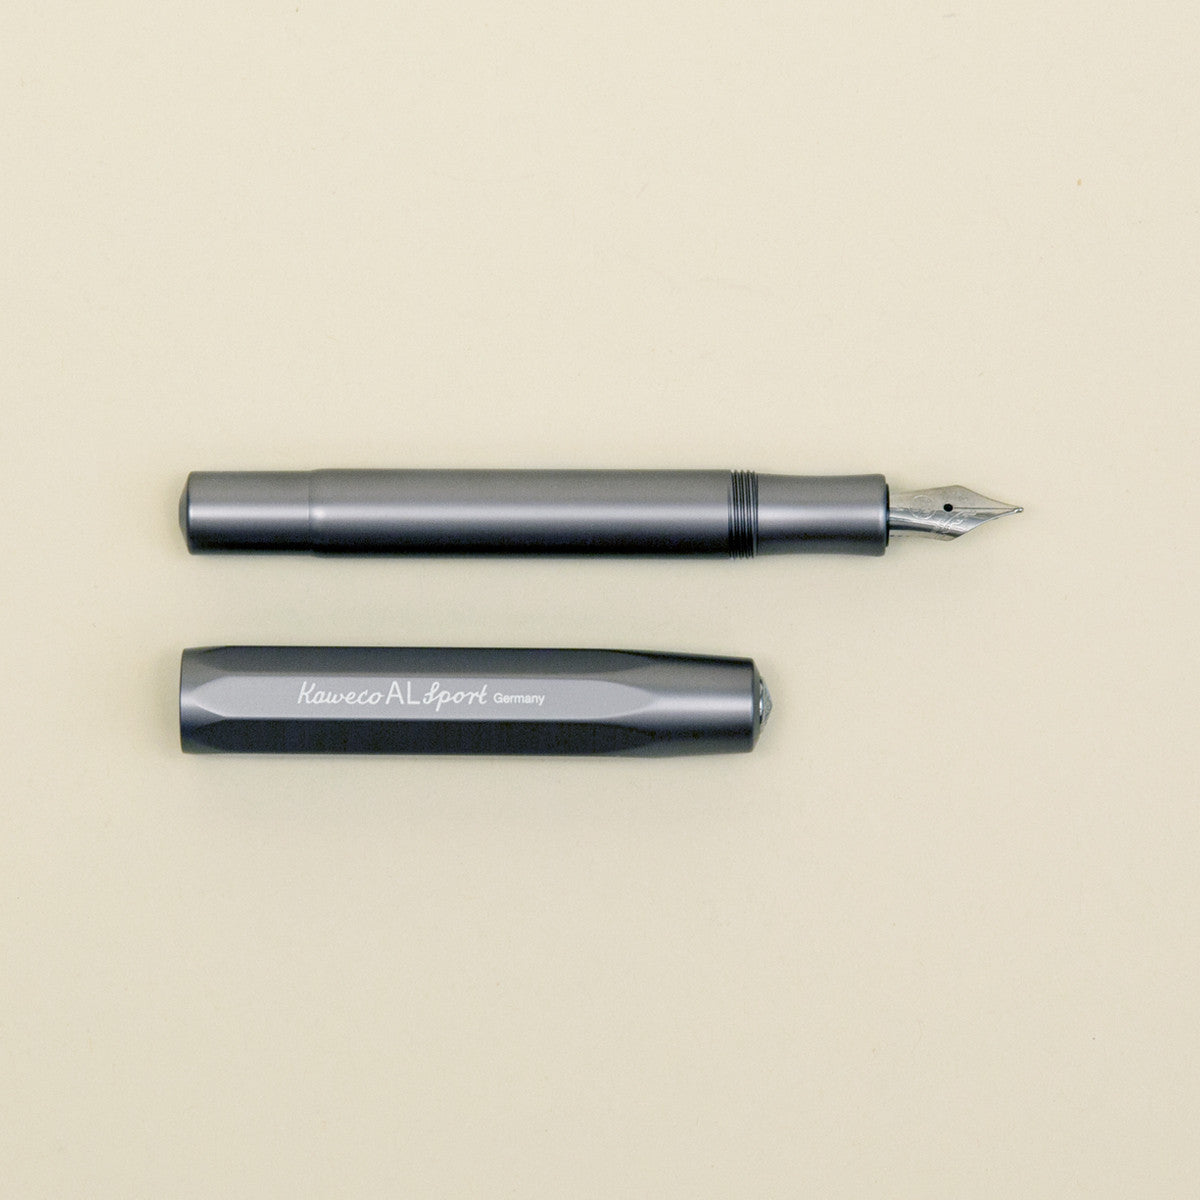 Kaweco Sport Fountain Pen - Dark Gray